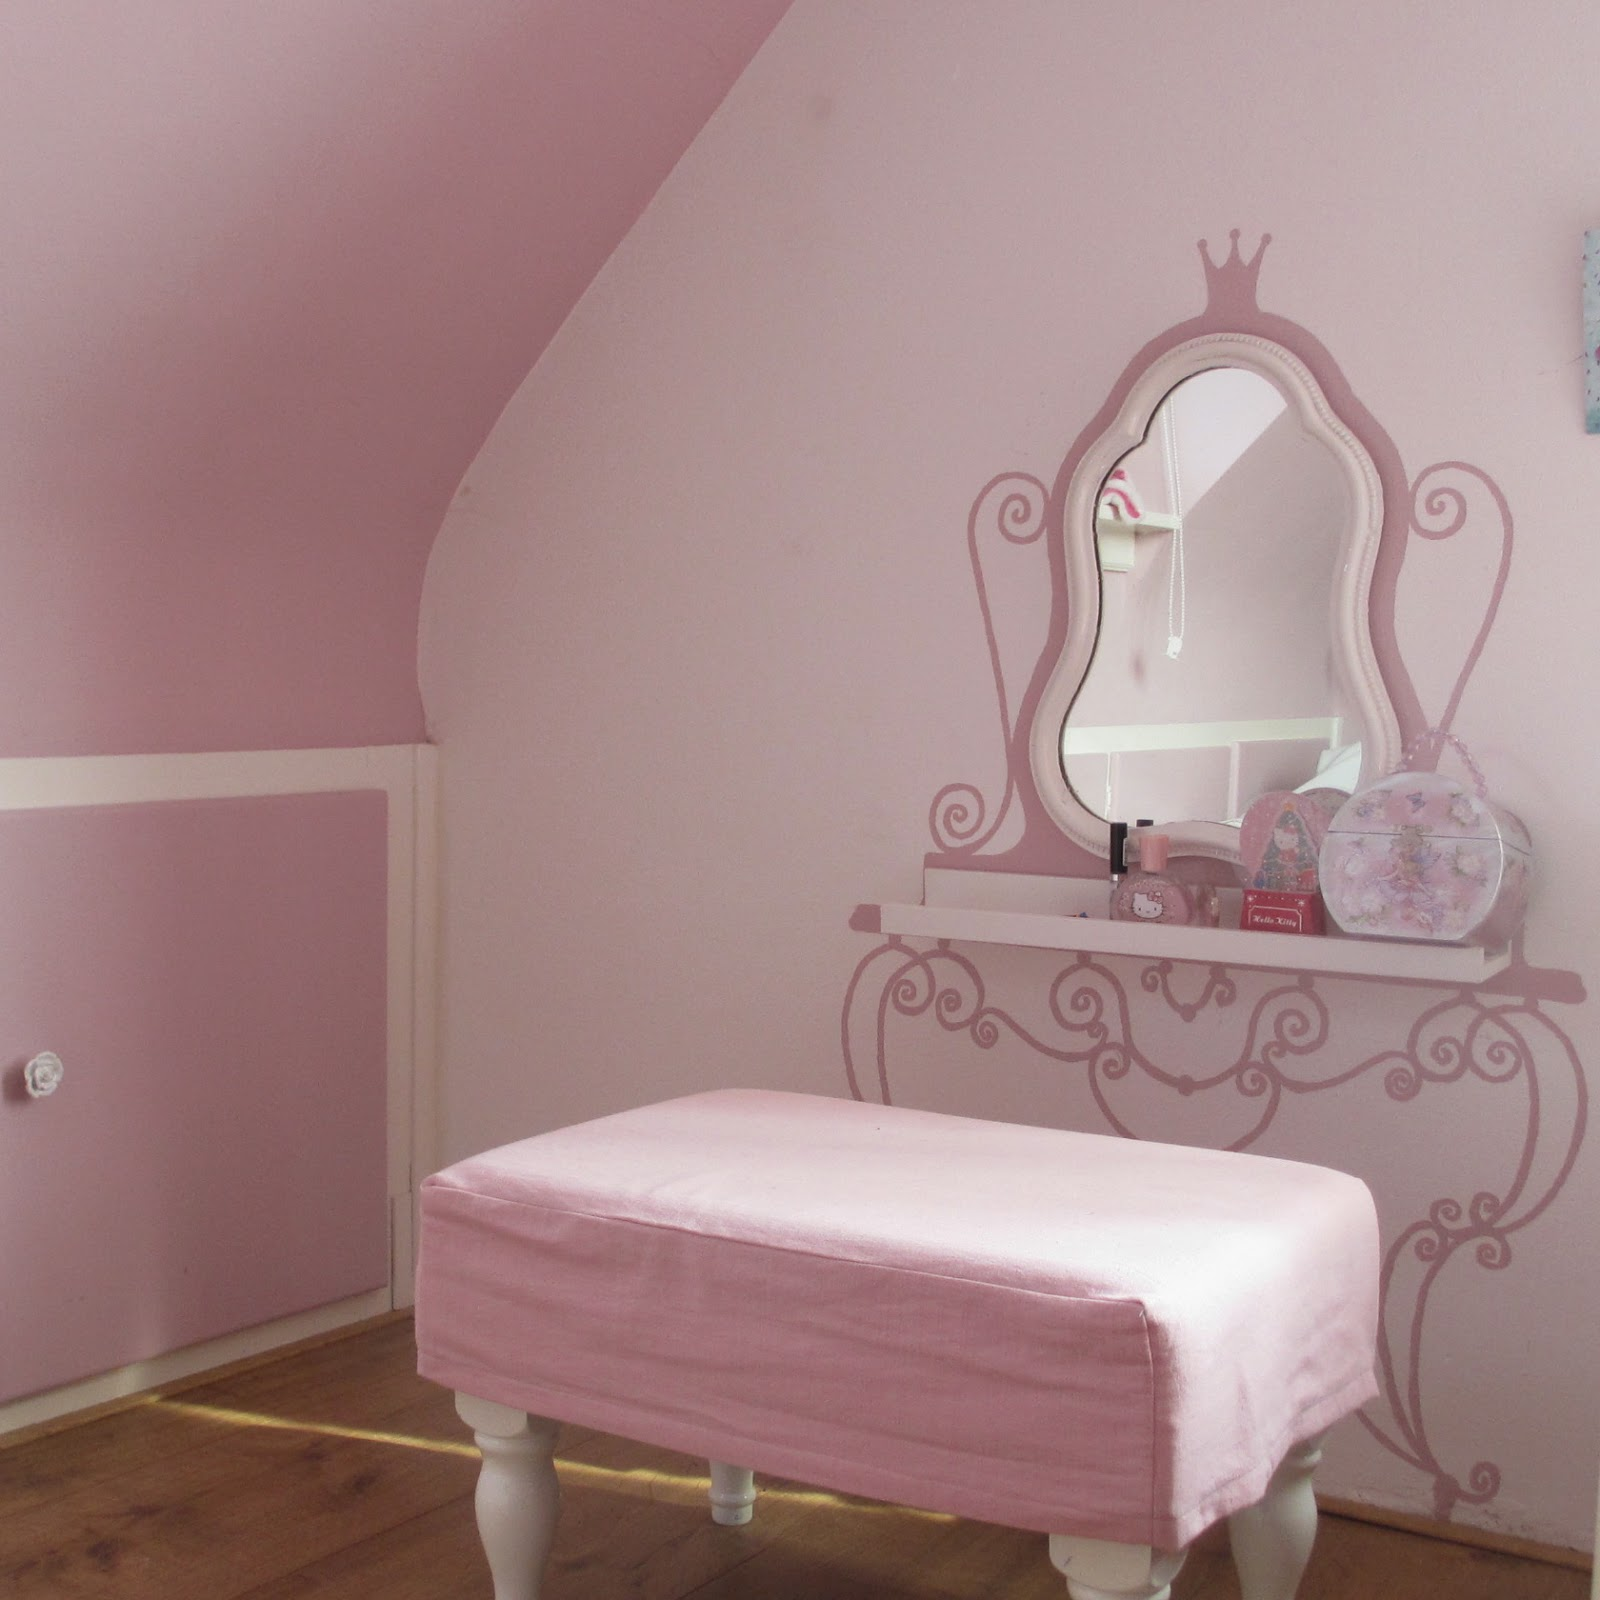 Vandani who 39 s afraid of pink and white - Roze meid slaapkamer ...